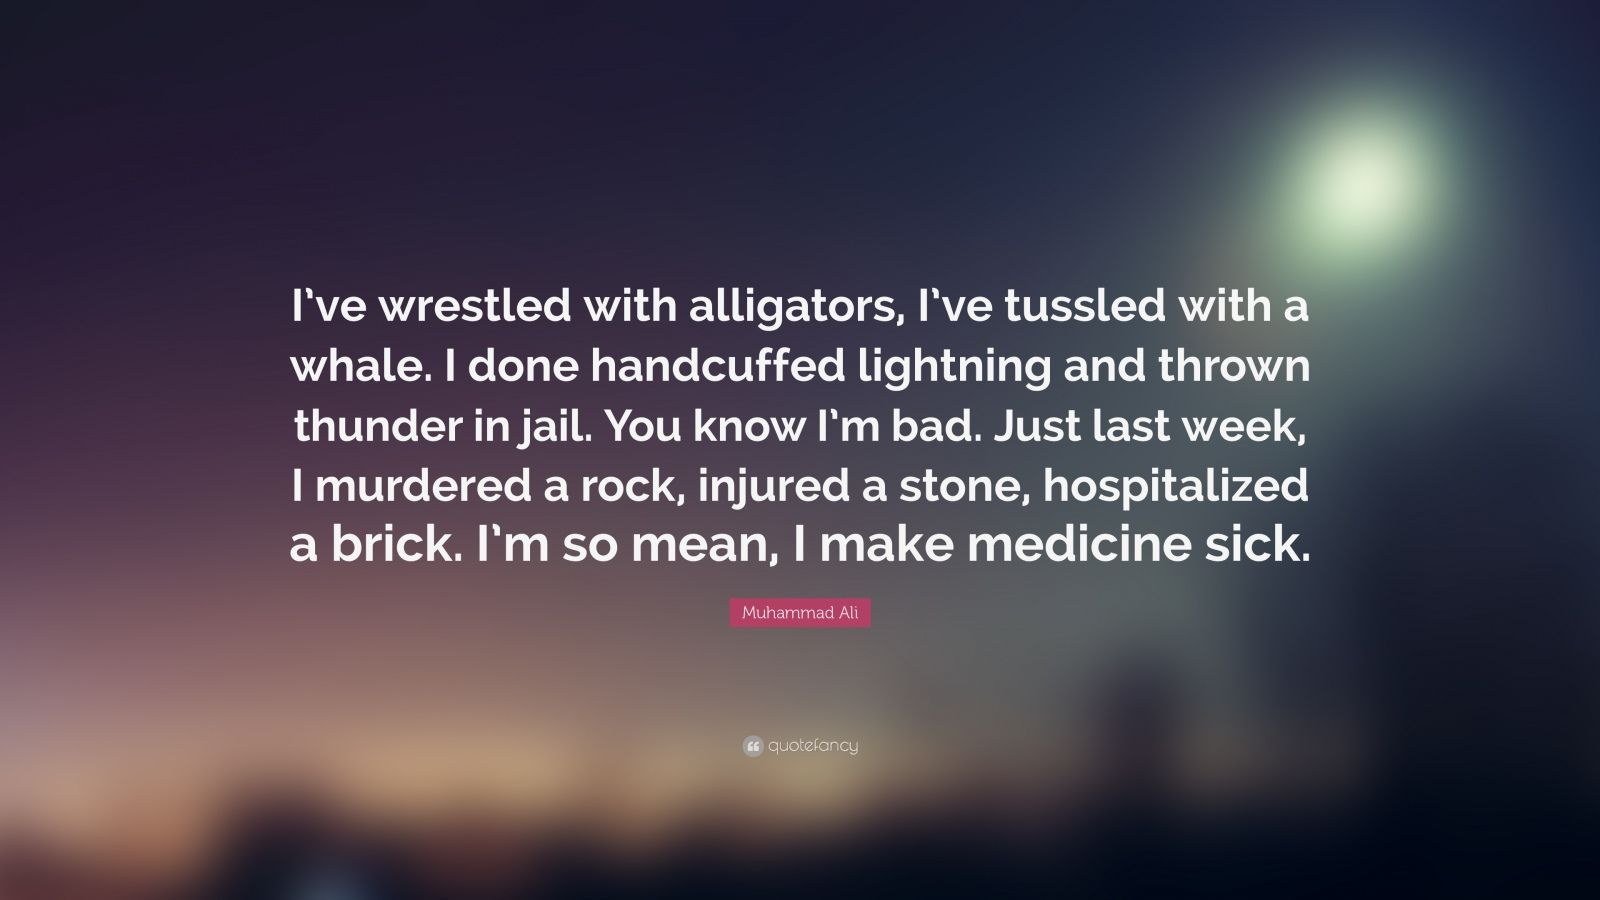 Muhammad Ali Quotes I Murdered a Rock